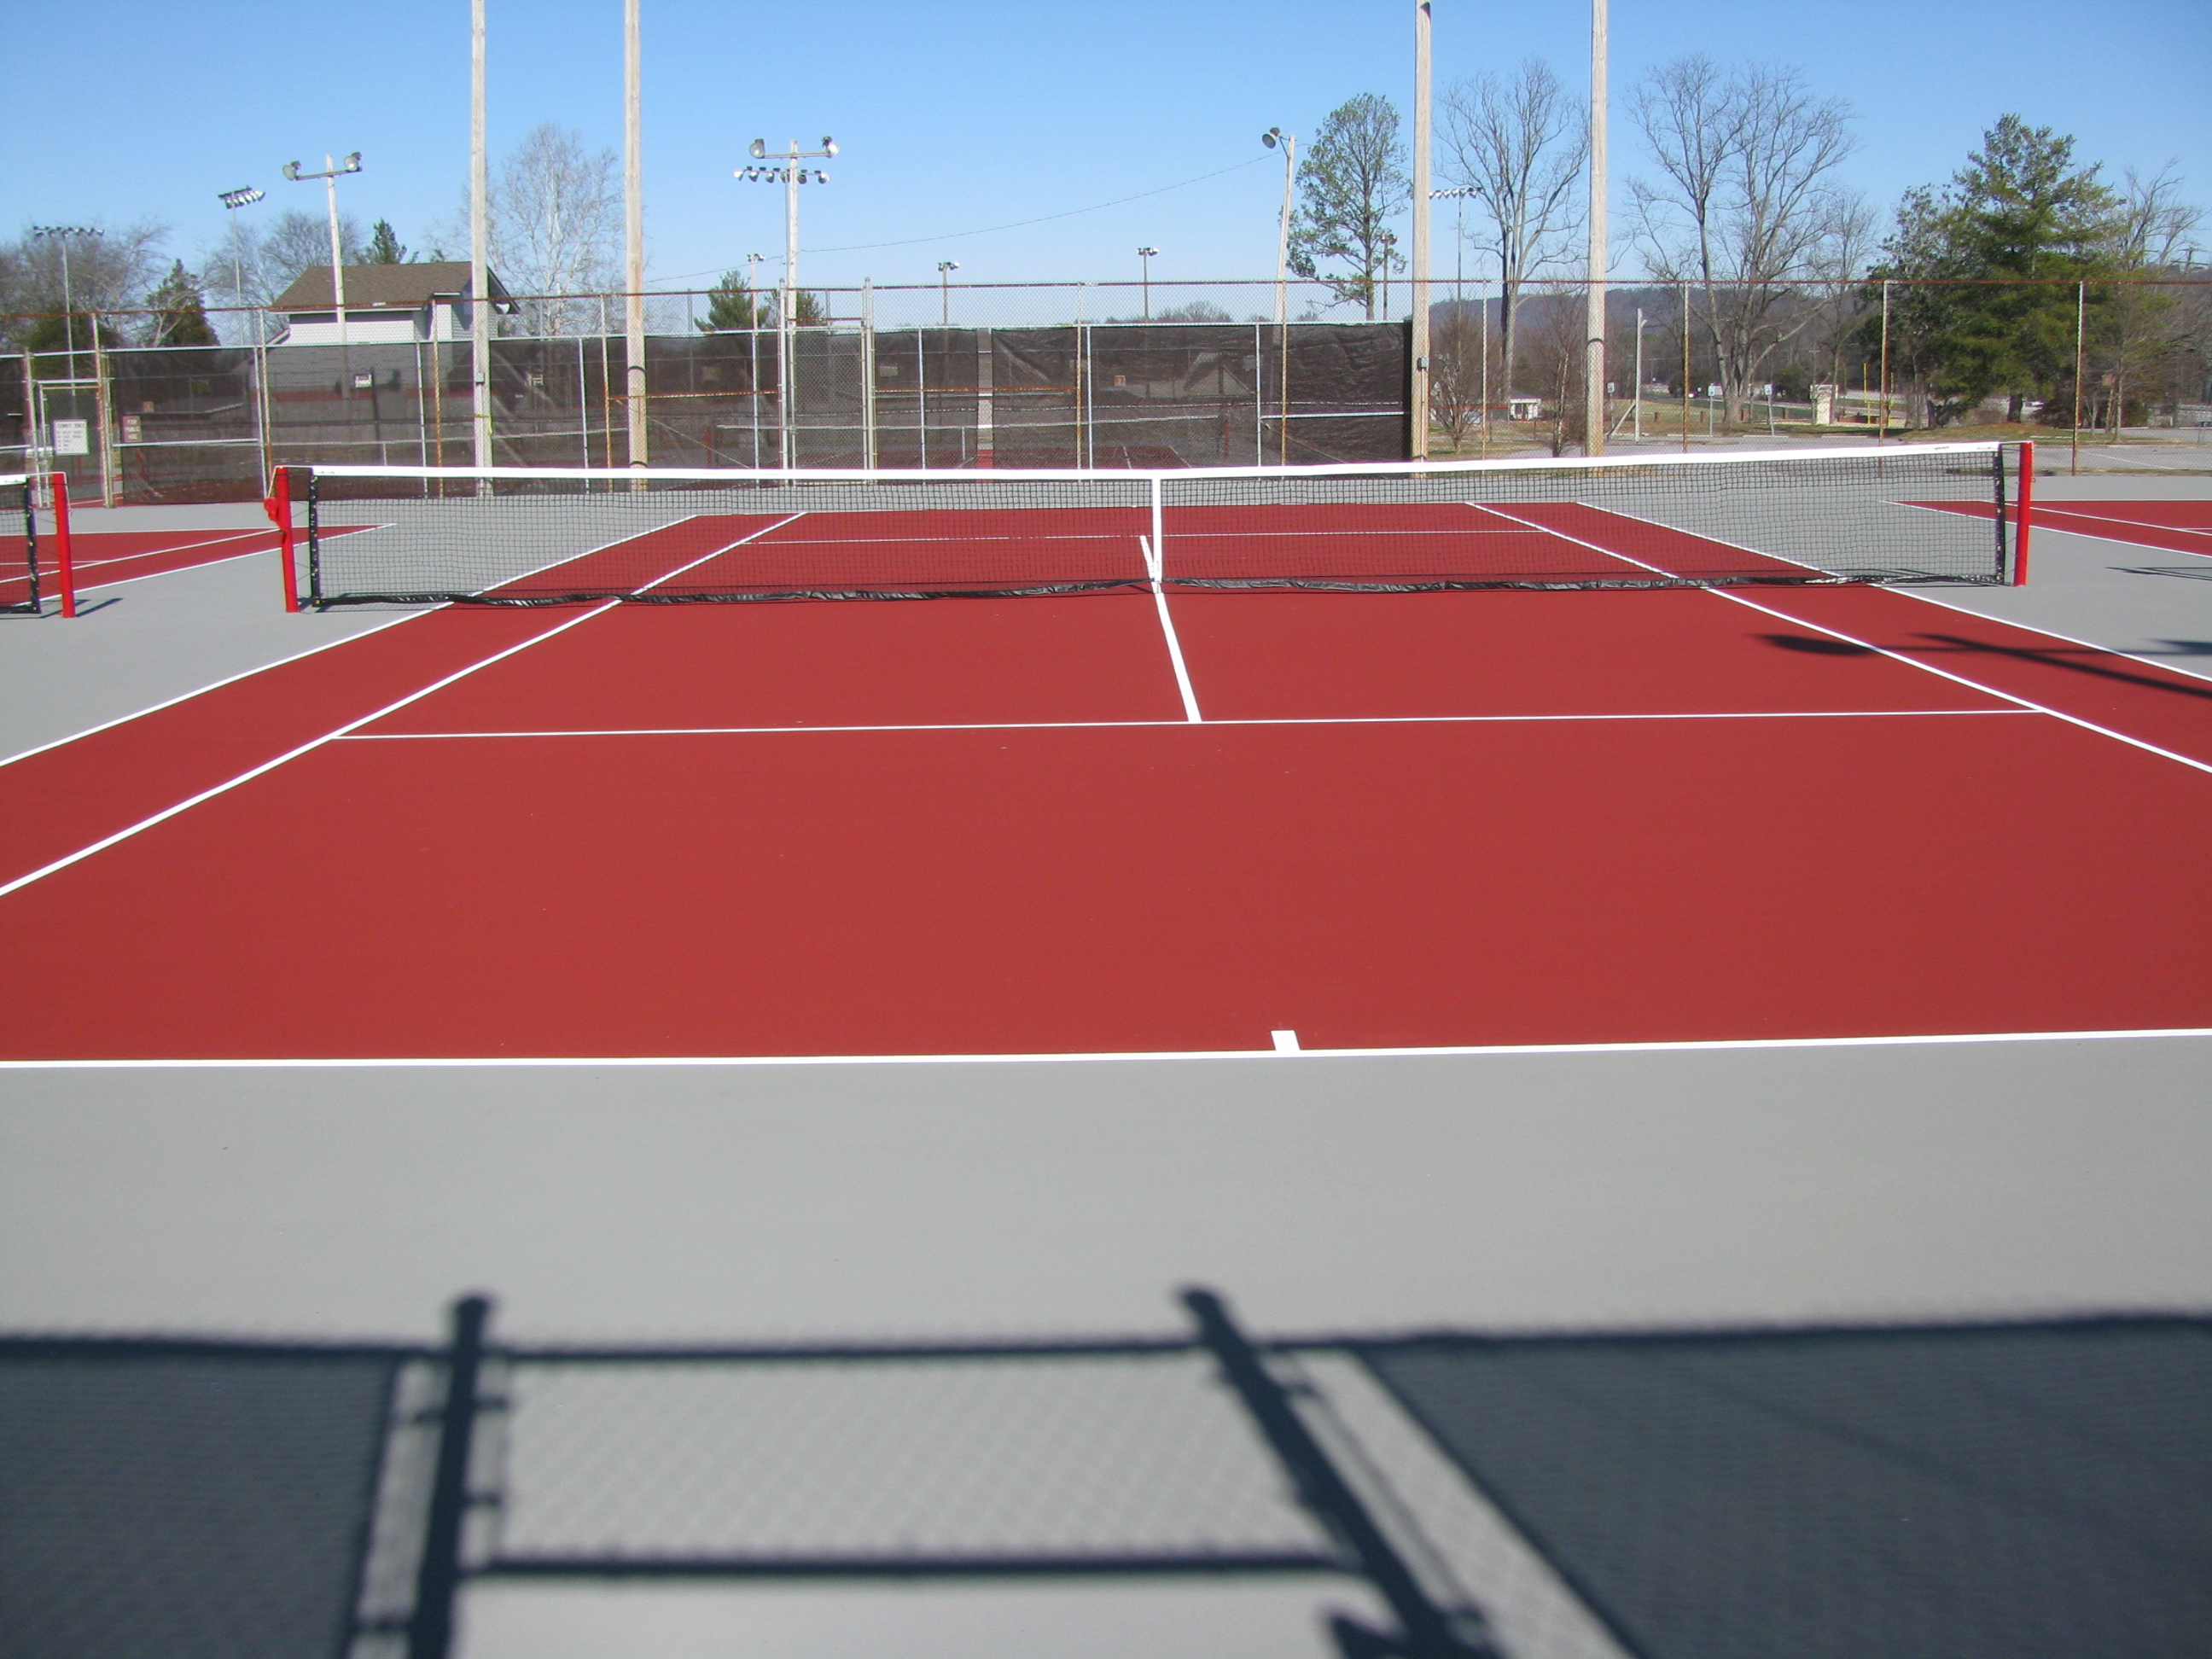 Concrete Pickleball Court Bing Images